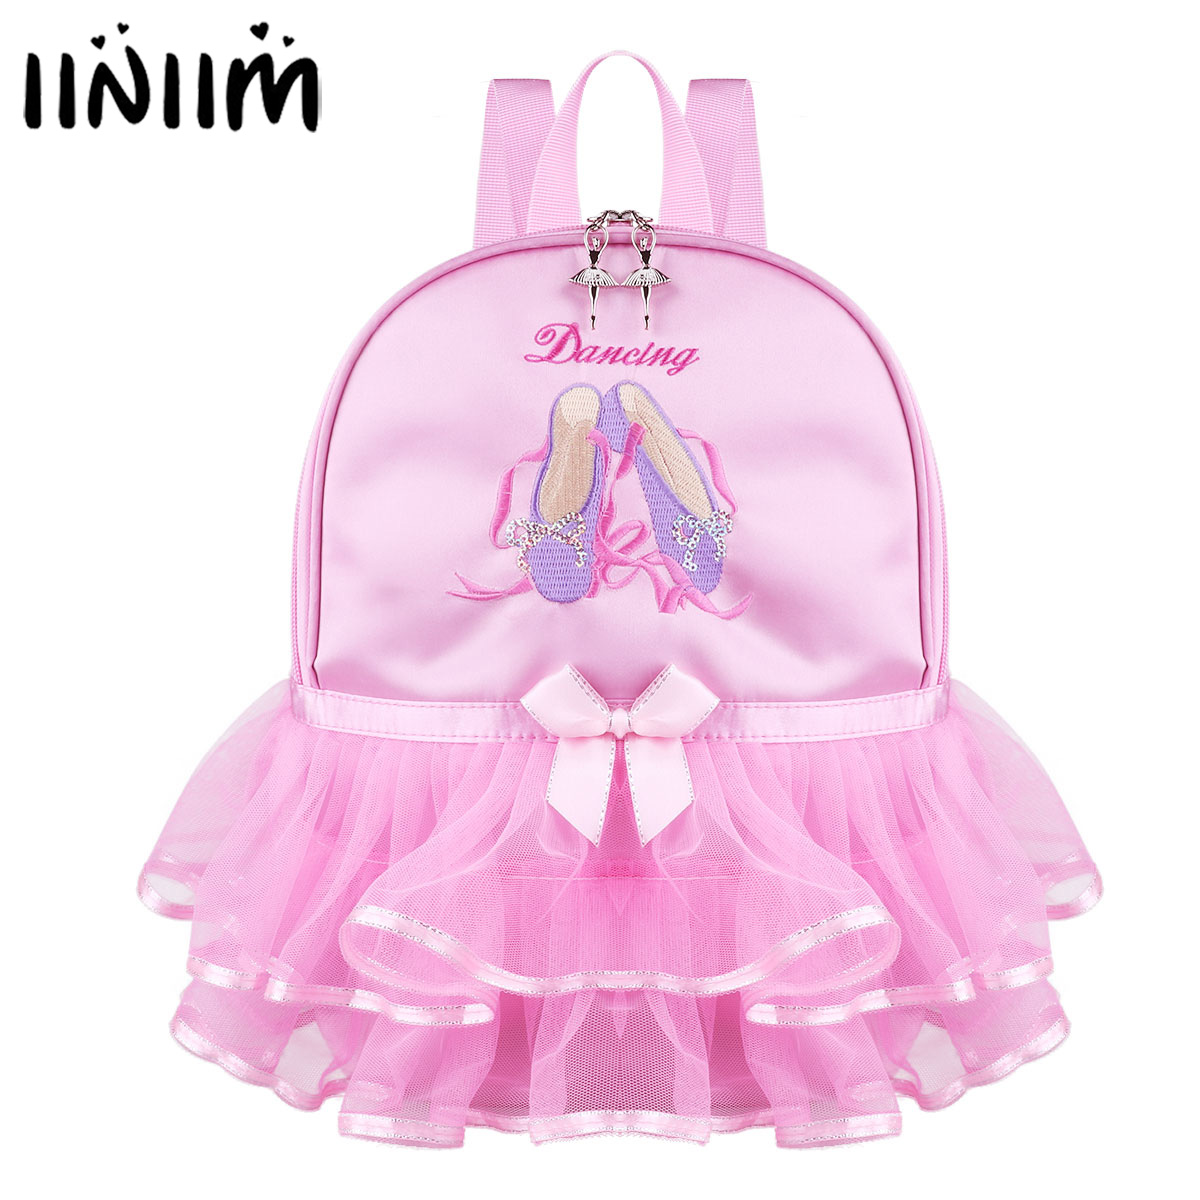 Kids Girls Ballet Dance Bag Students School Backpack Toe Shoes Embroidered Tiered Ruffled Tutu Shoulder Bag Costume Dancewear